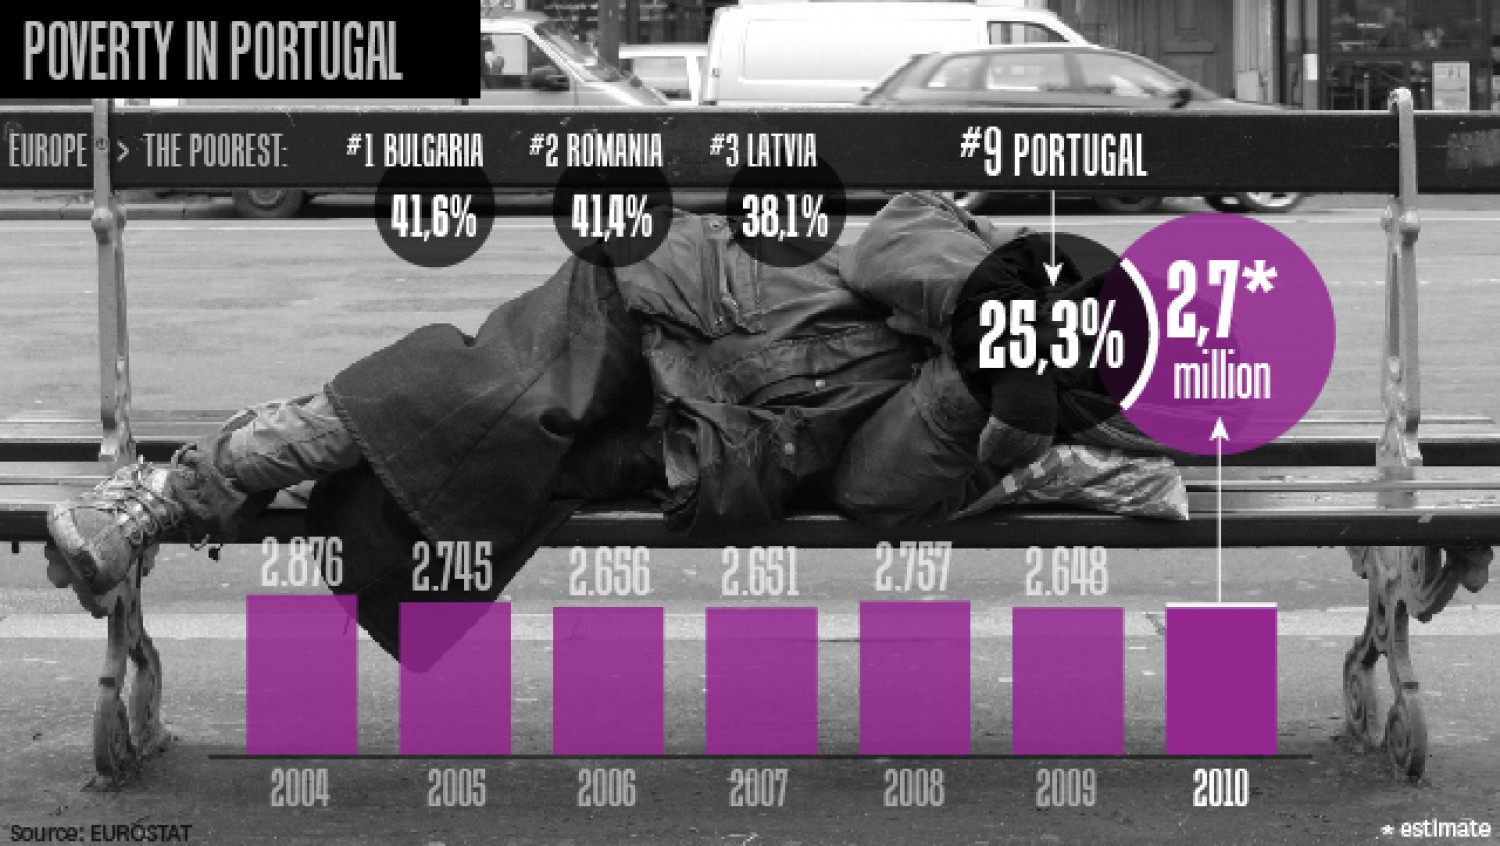 The numbers of poverty in Portugal Infographic